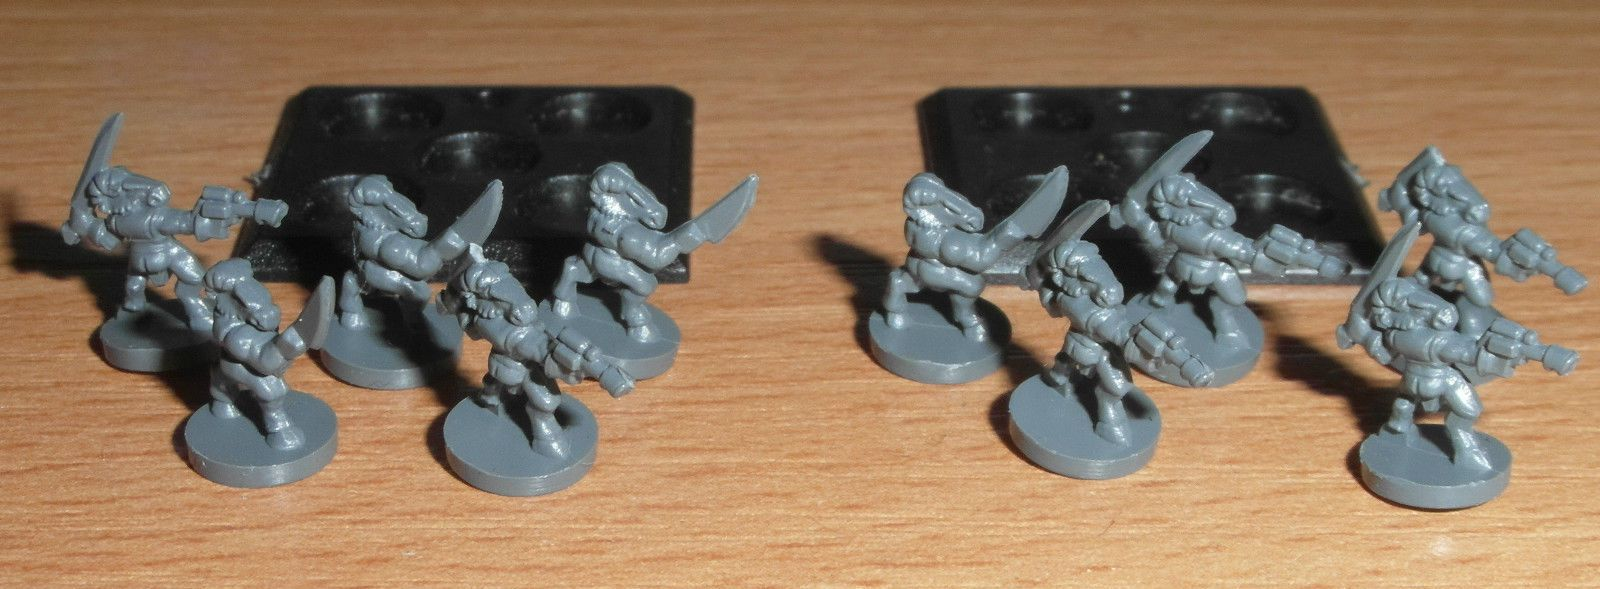 Epic 40k Chaos or Imperial Guard Beastmen x10 (unpainted